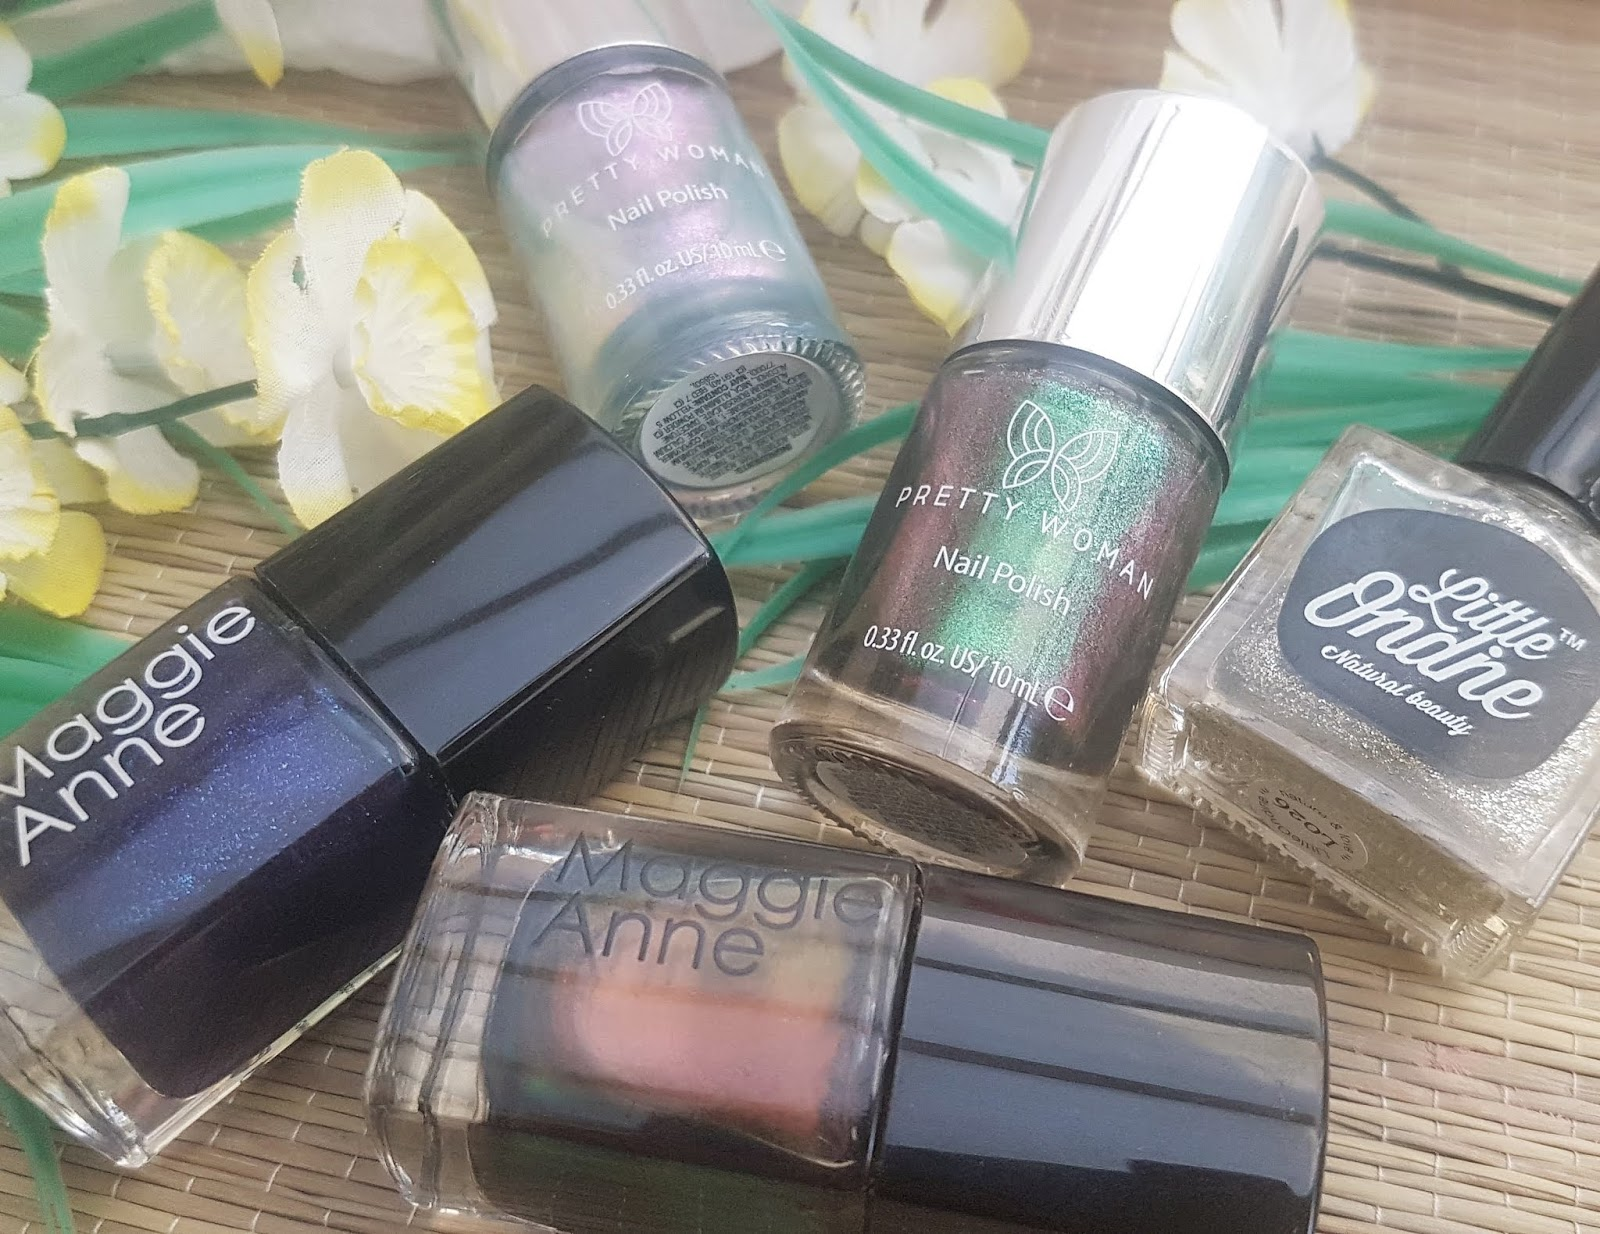 Maggie Anne, Pretty Woman NYC, and Little Ondine Nail Polish - Best Makeup of 2019